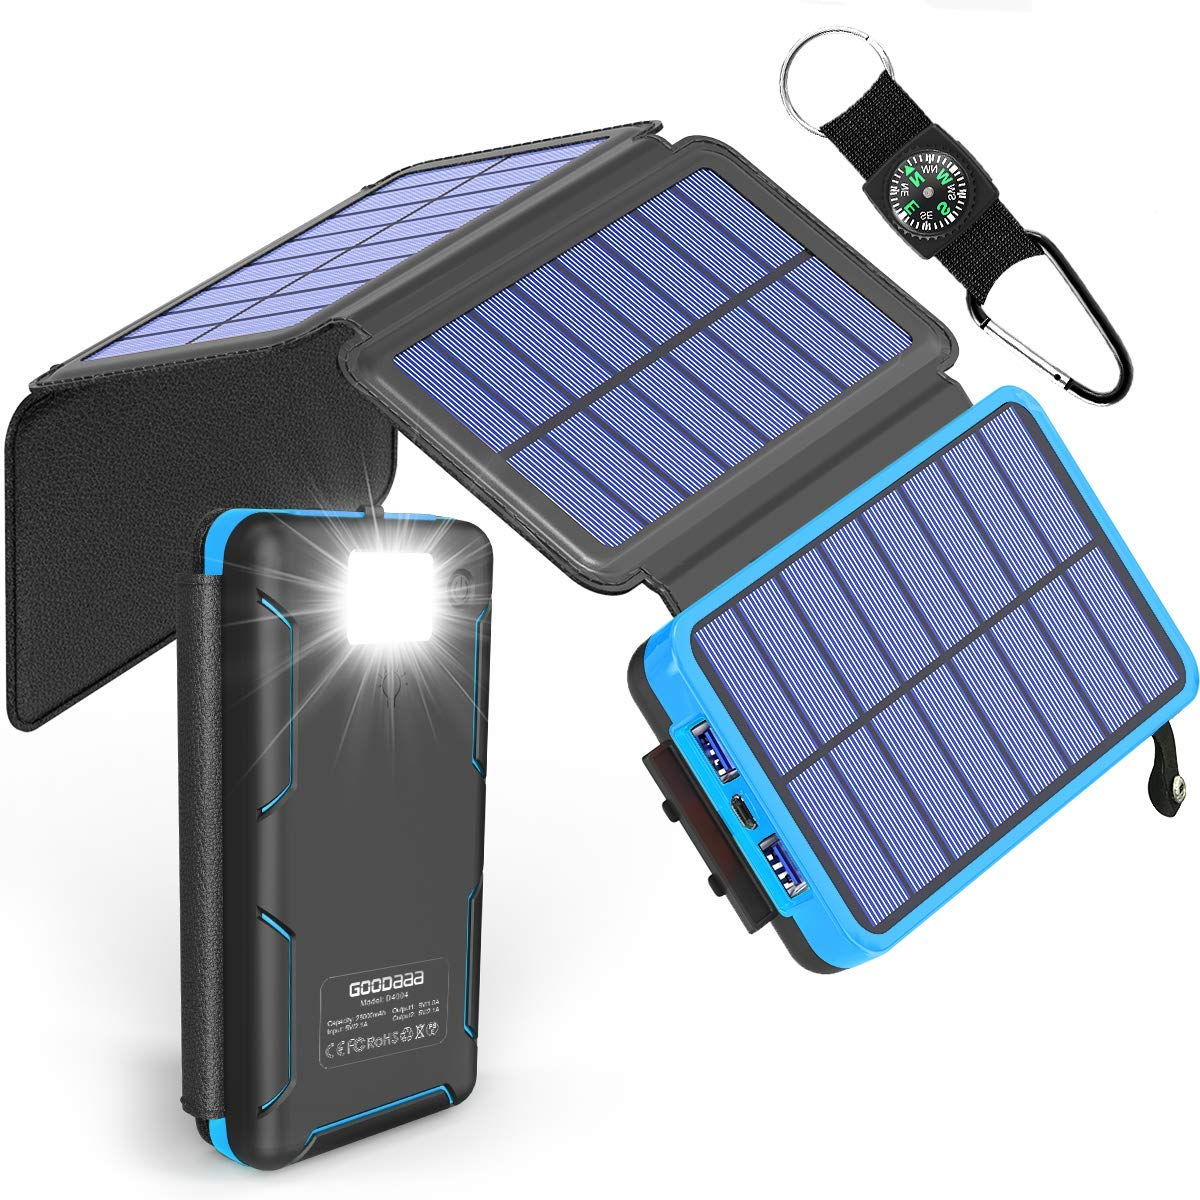 Solar Power Bank 25000mAh High Capacity USB External Battery Pack Backup Battery Power Pack with 4 Foldable Solar Charging Panels, Dual 2.1A Output Ports, Flashlight for iPhone Android Cellphones by GOODaaa